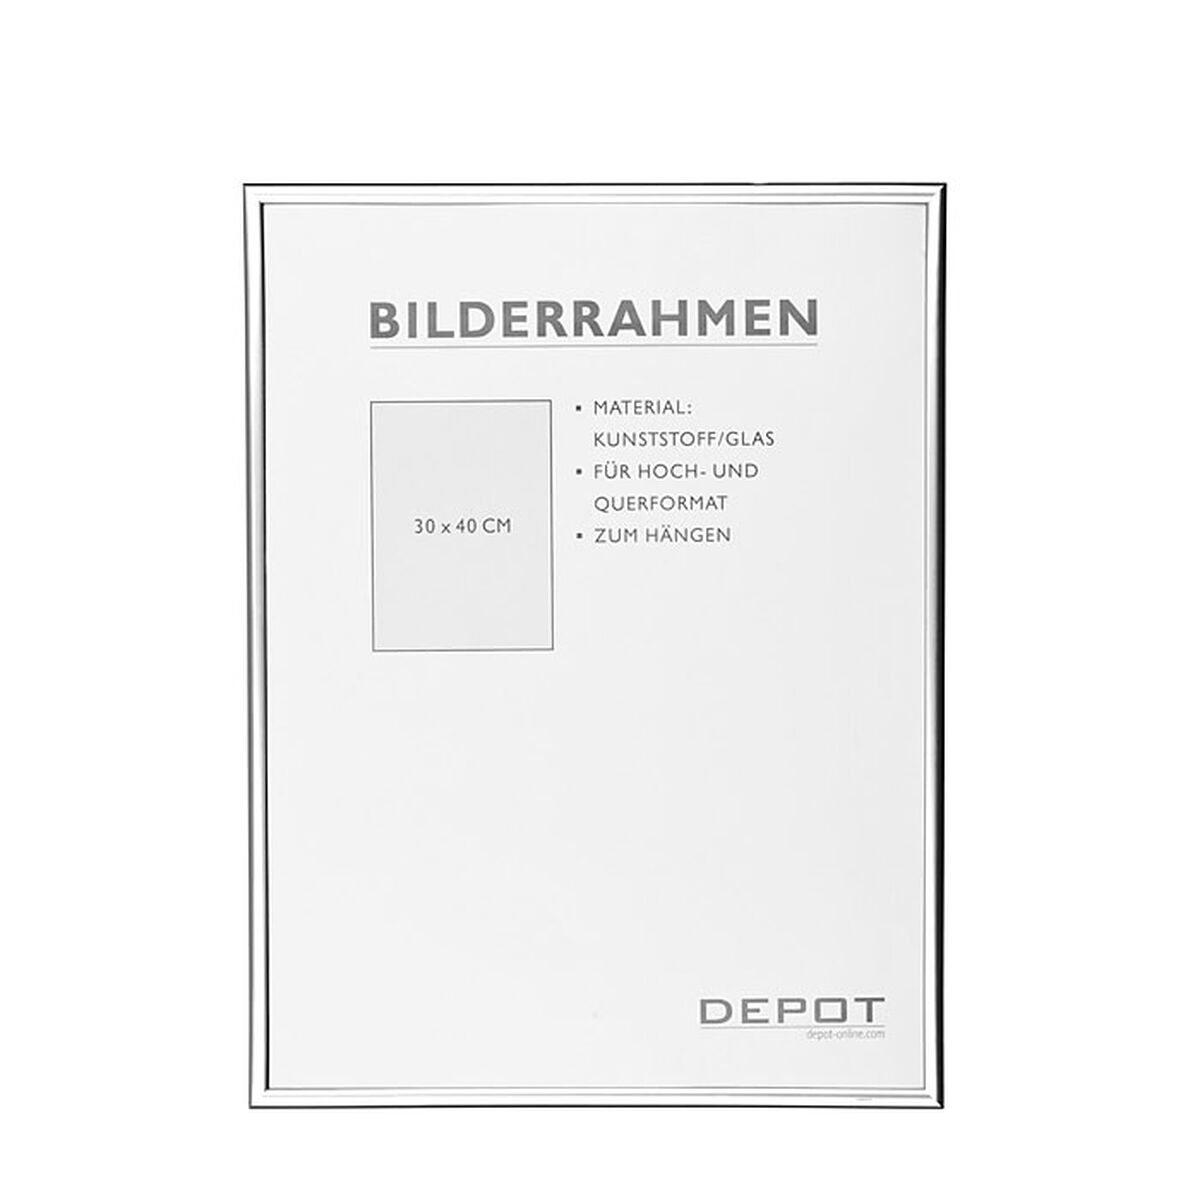 bilderrahmen 60 x 40 str mby frame black 21x30 cm ikea 2. Black Bedroom Furniture Sets. Home Design Ideas